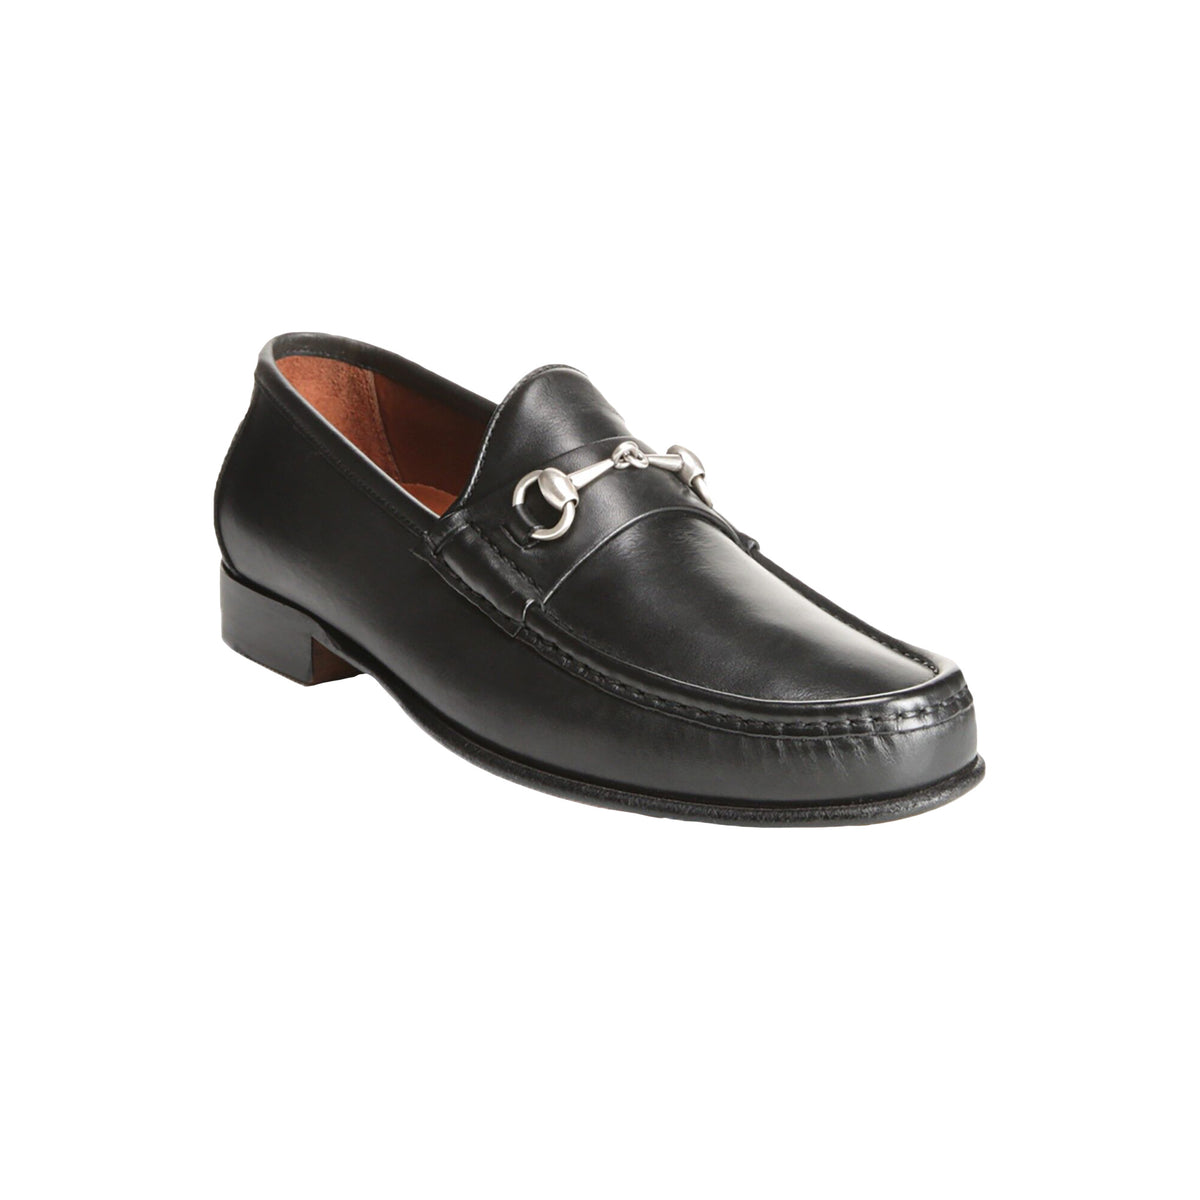 Allen Edmonds Verona II Italian Leather Bit Loafer